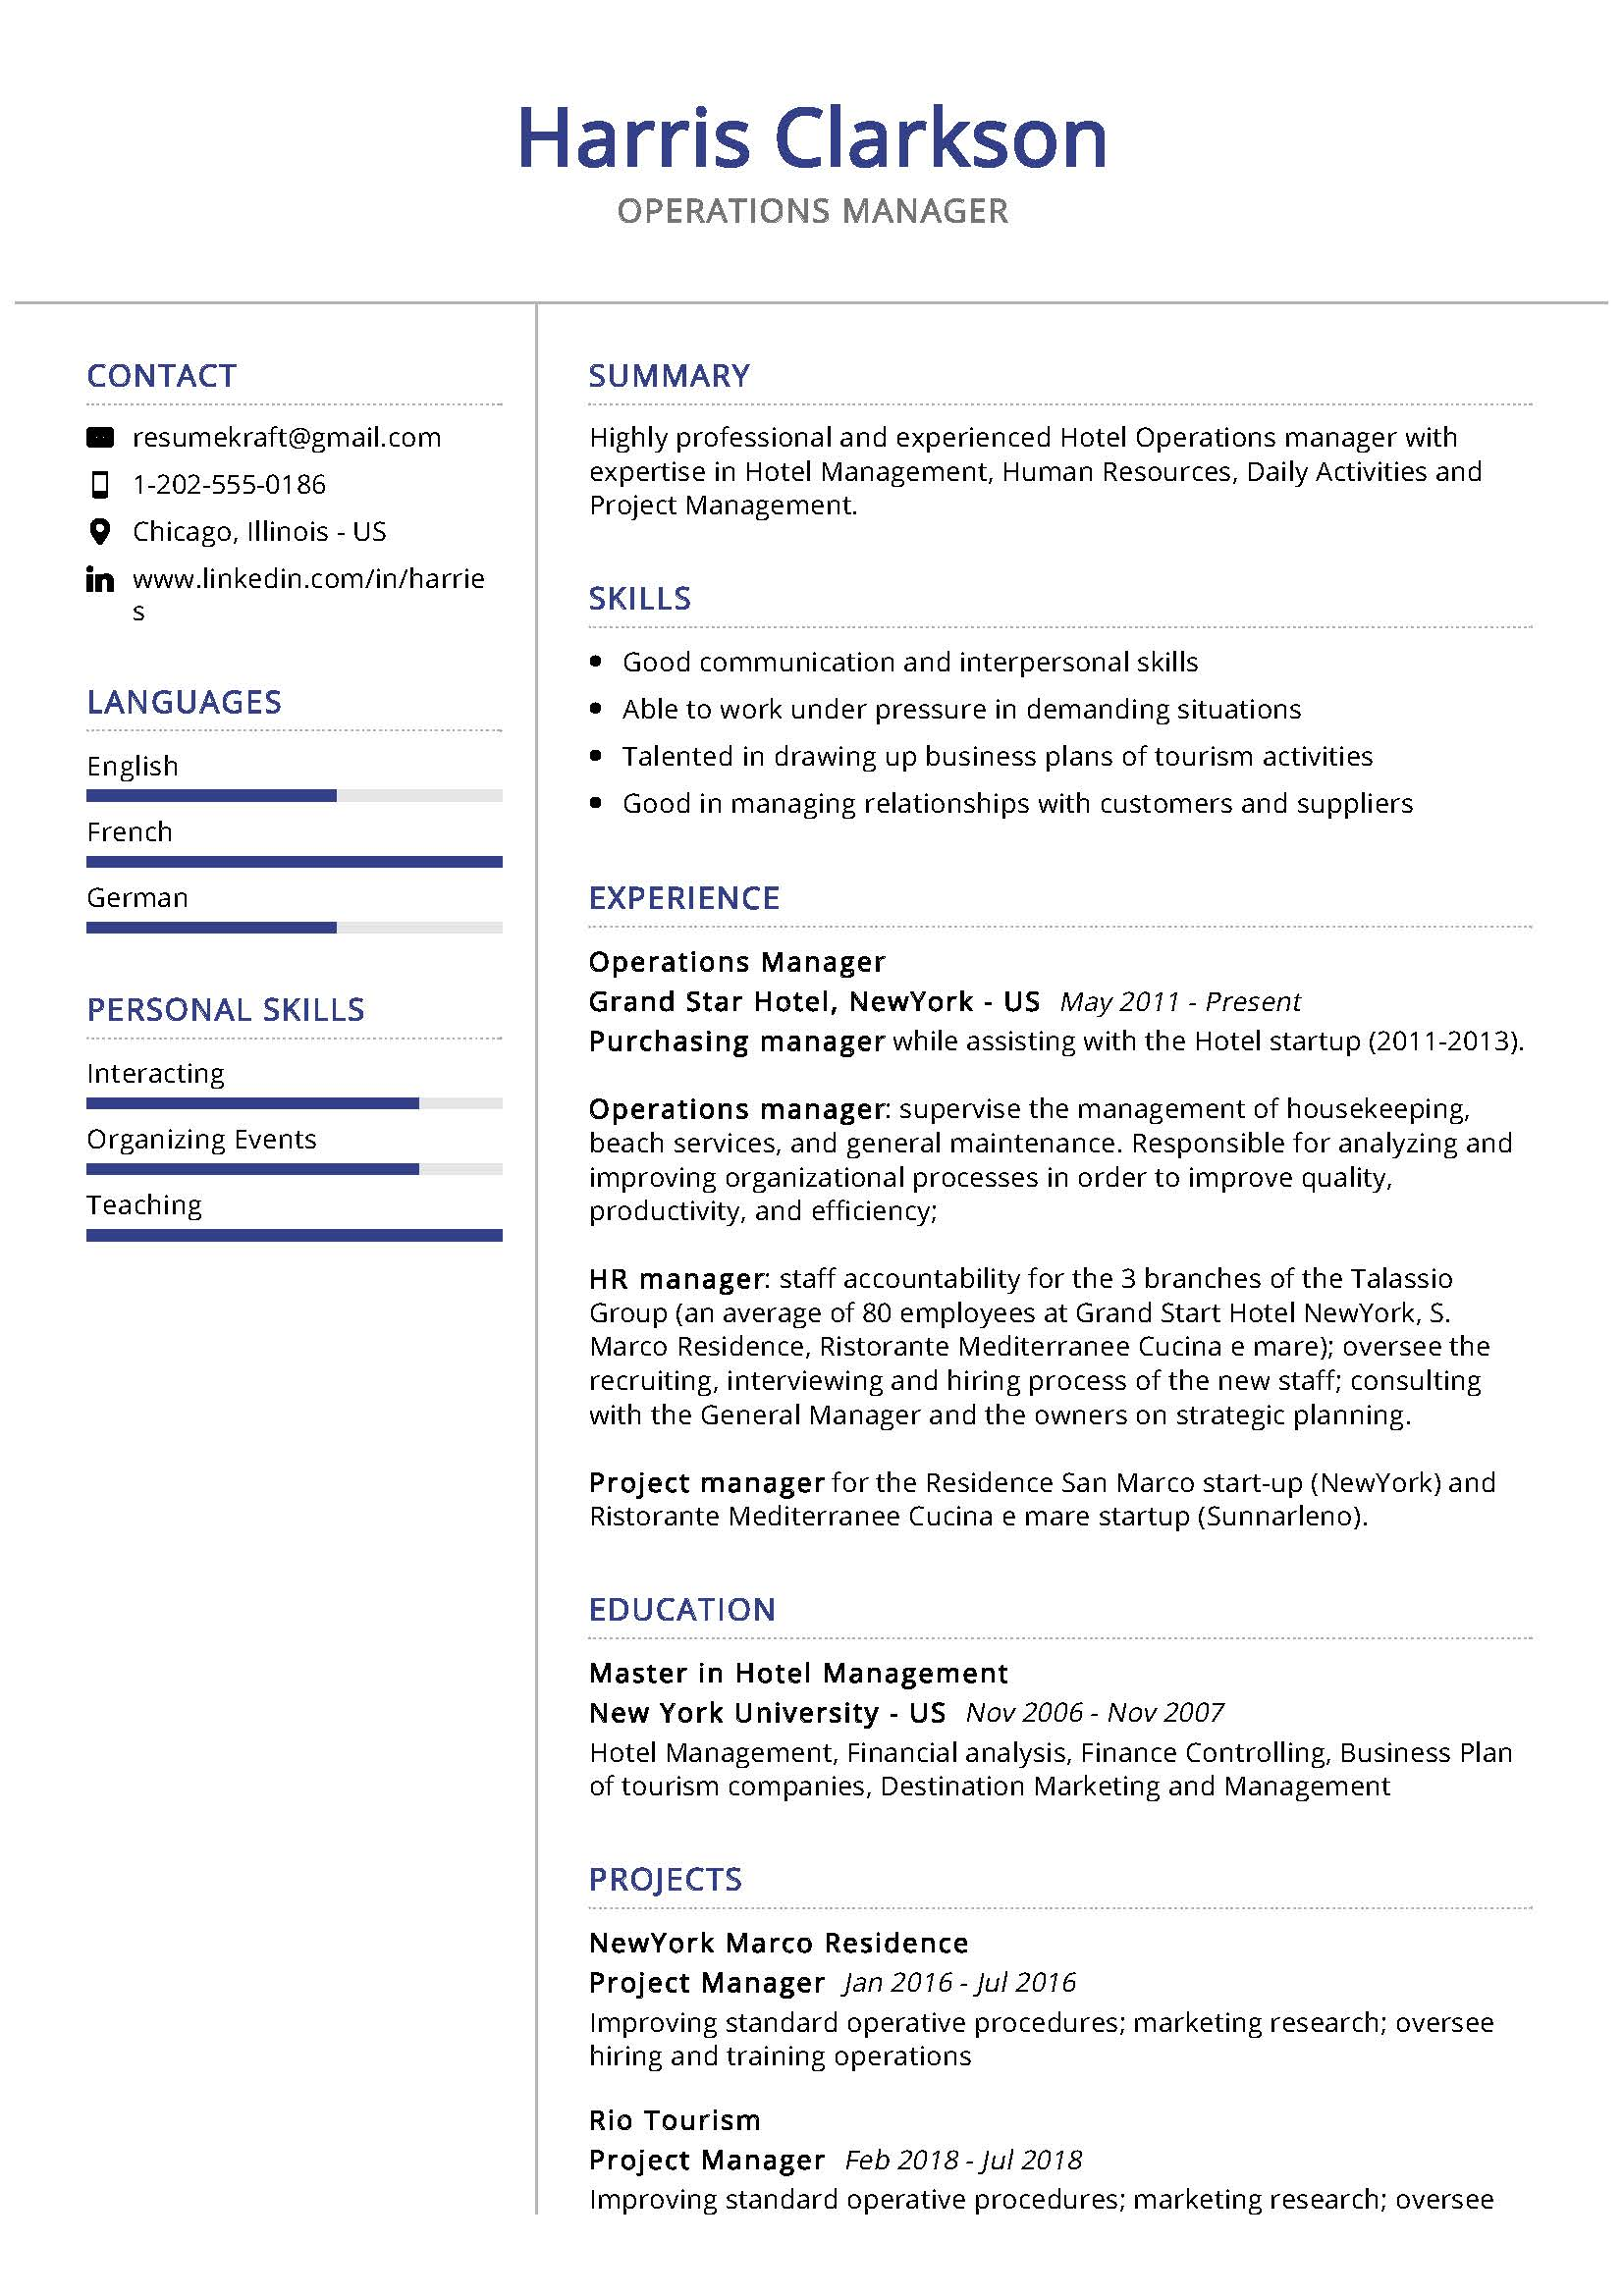 operations manager resume sample writing tips resumekraft examples recent graduate Resume Manager Resume Examples 2020